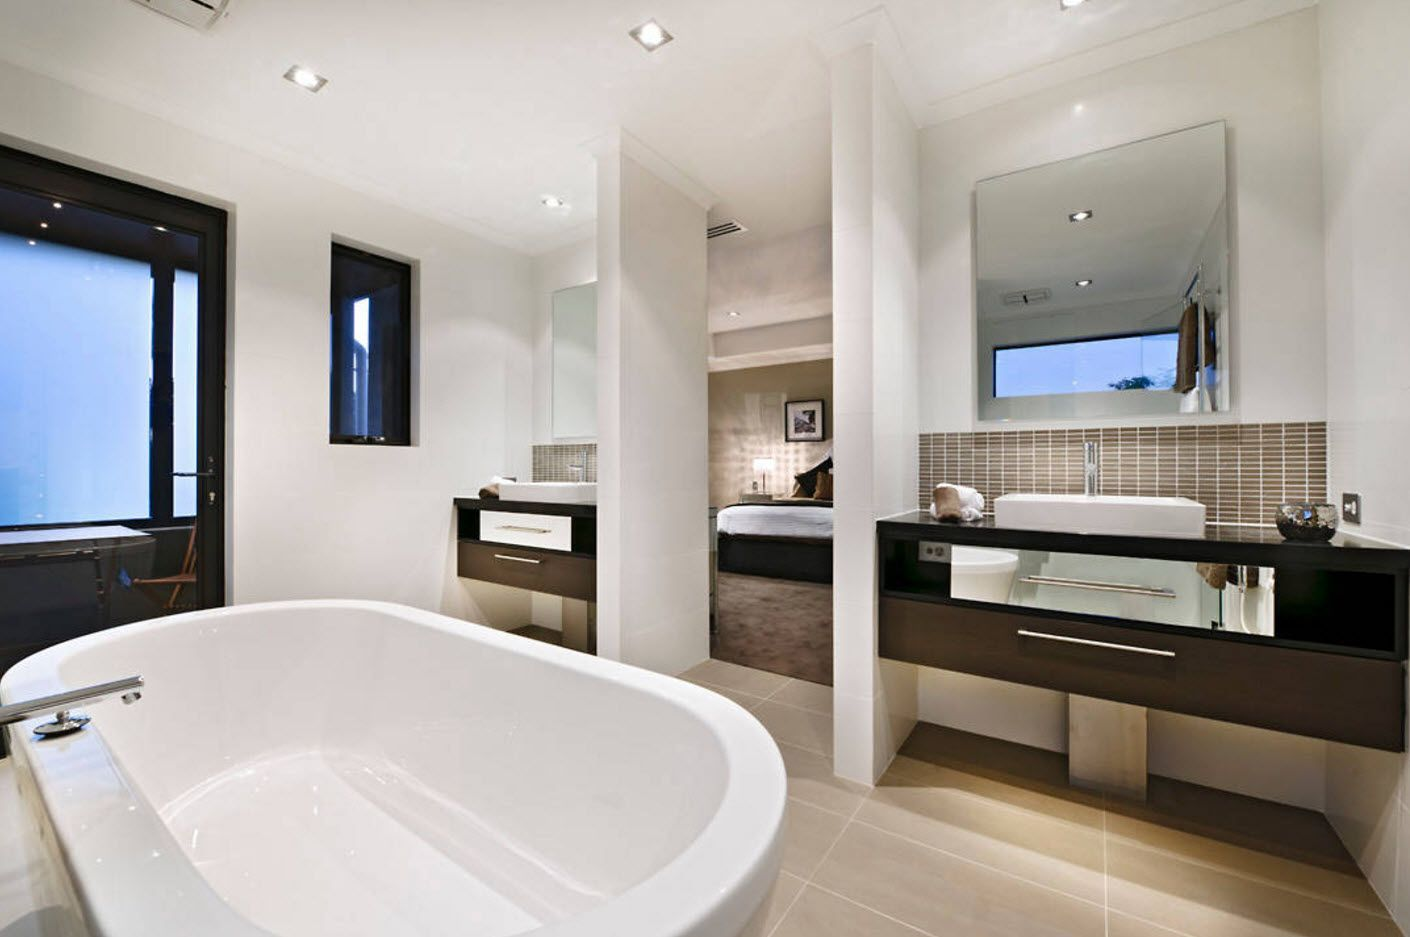 Large bathroom with complex of storage systems zoned by panels and oval bathtub